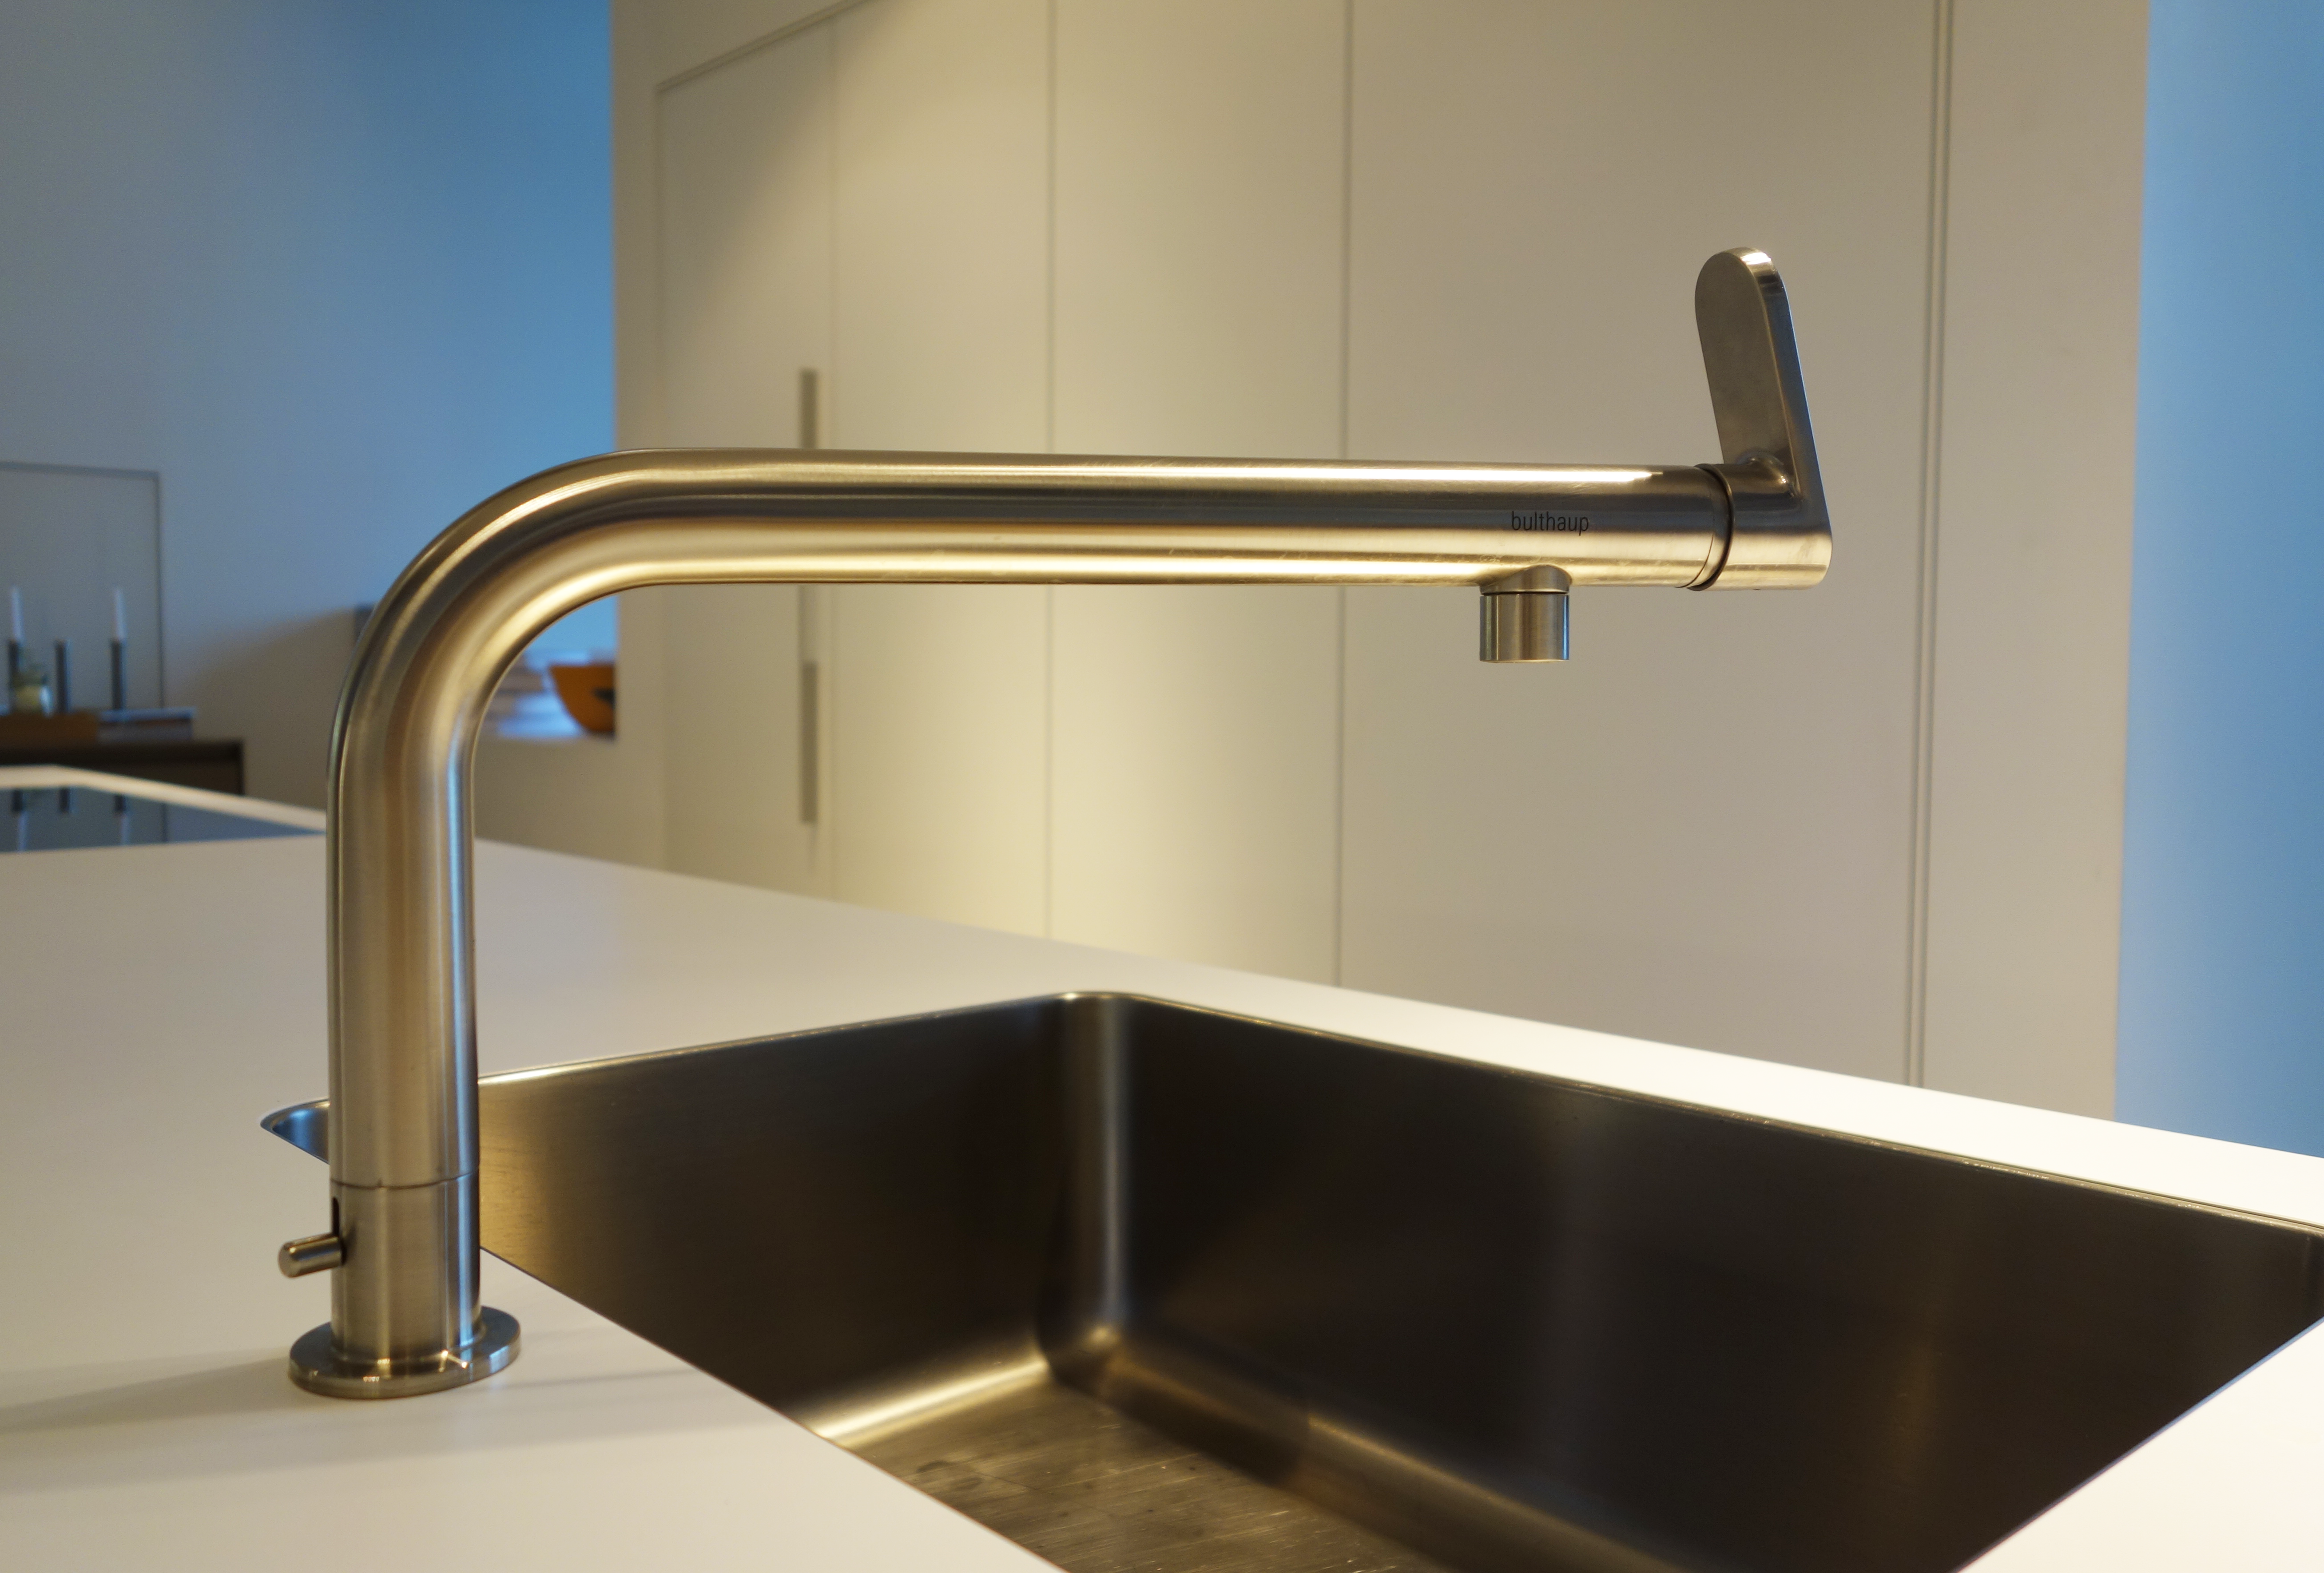 File:Bulthaup faucet.png - Wikimedia Commons